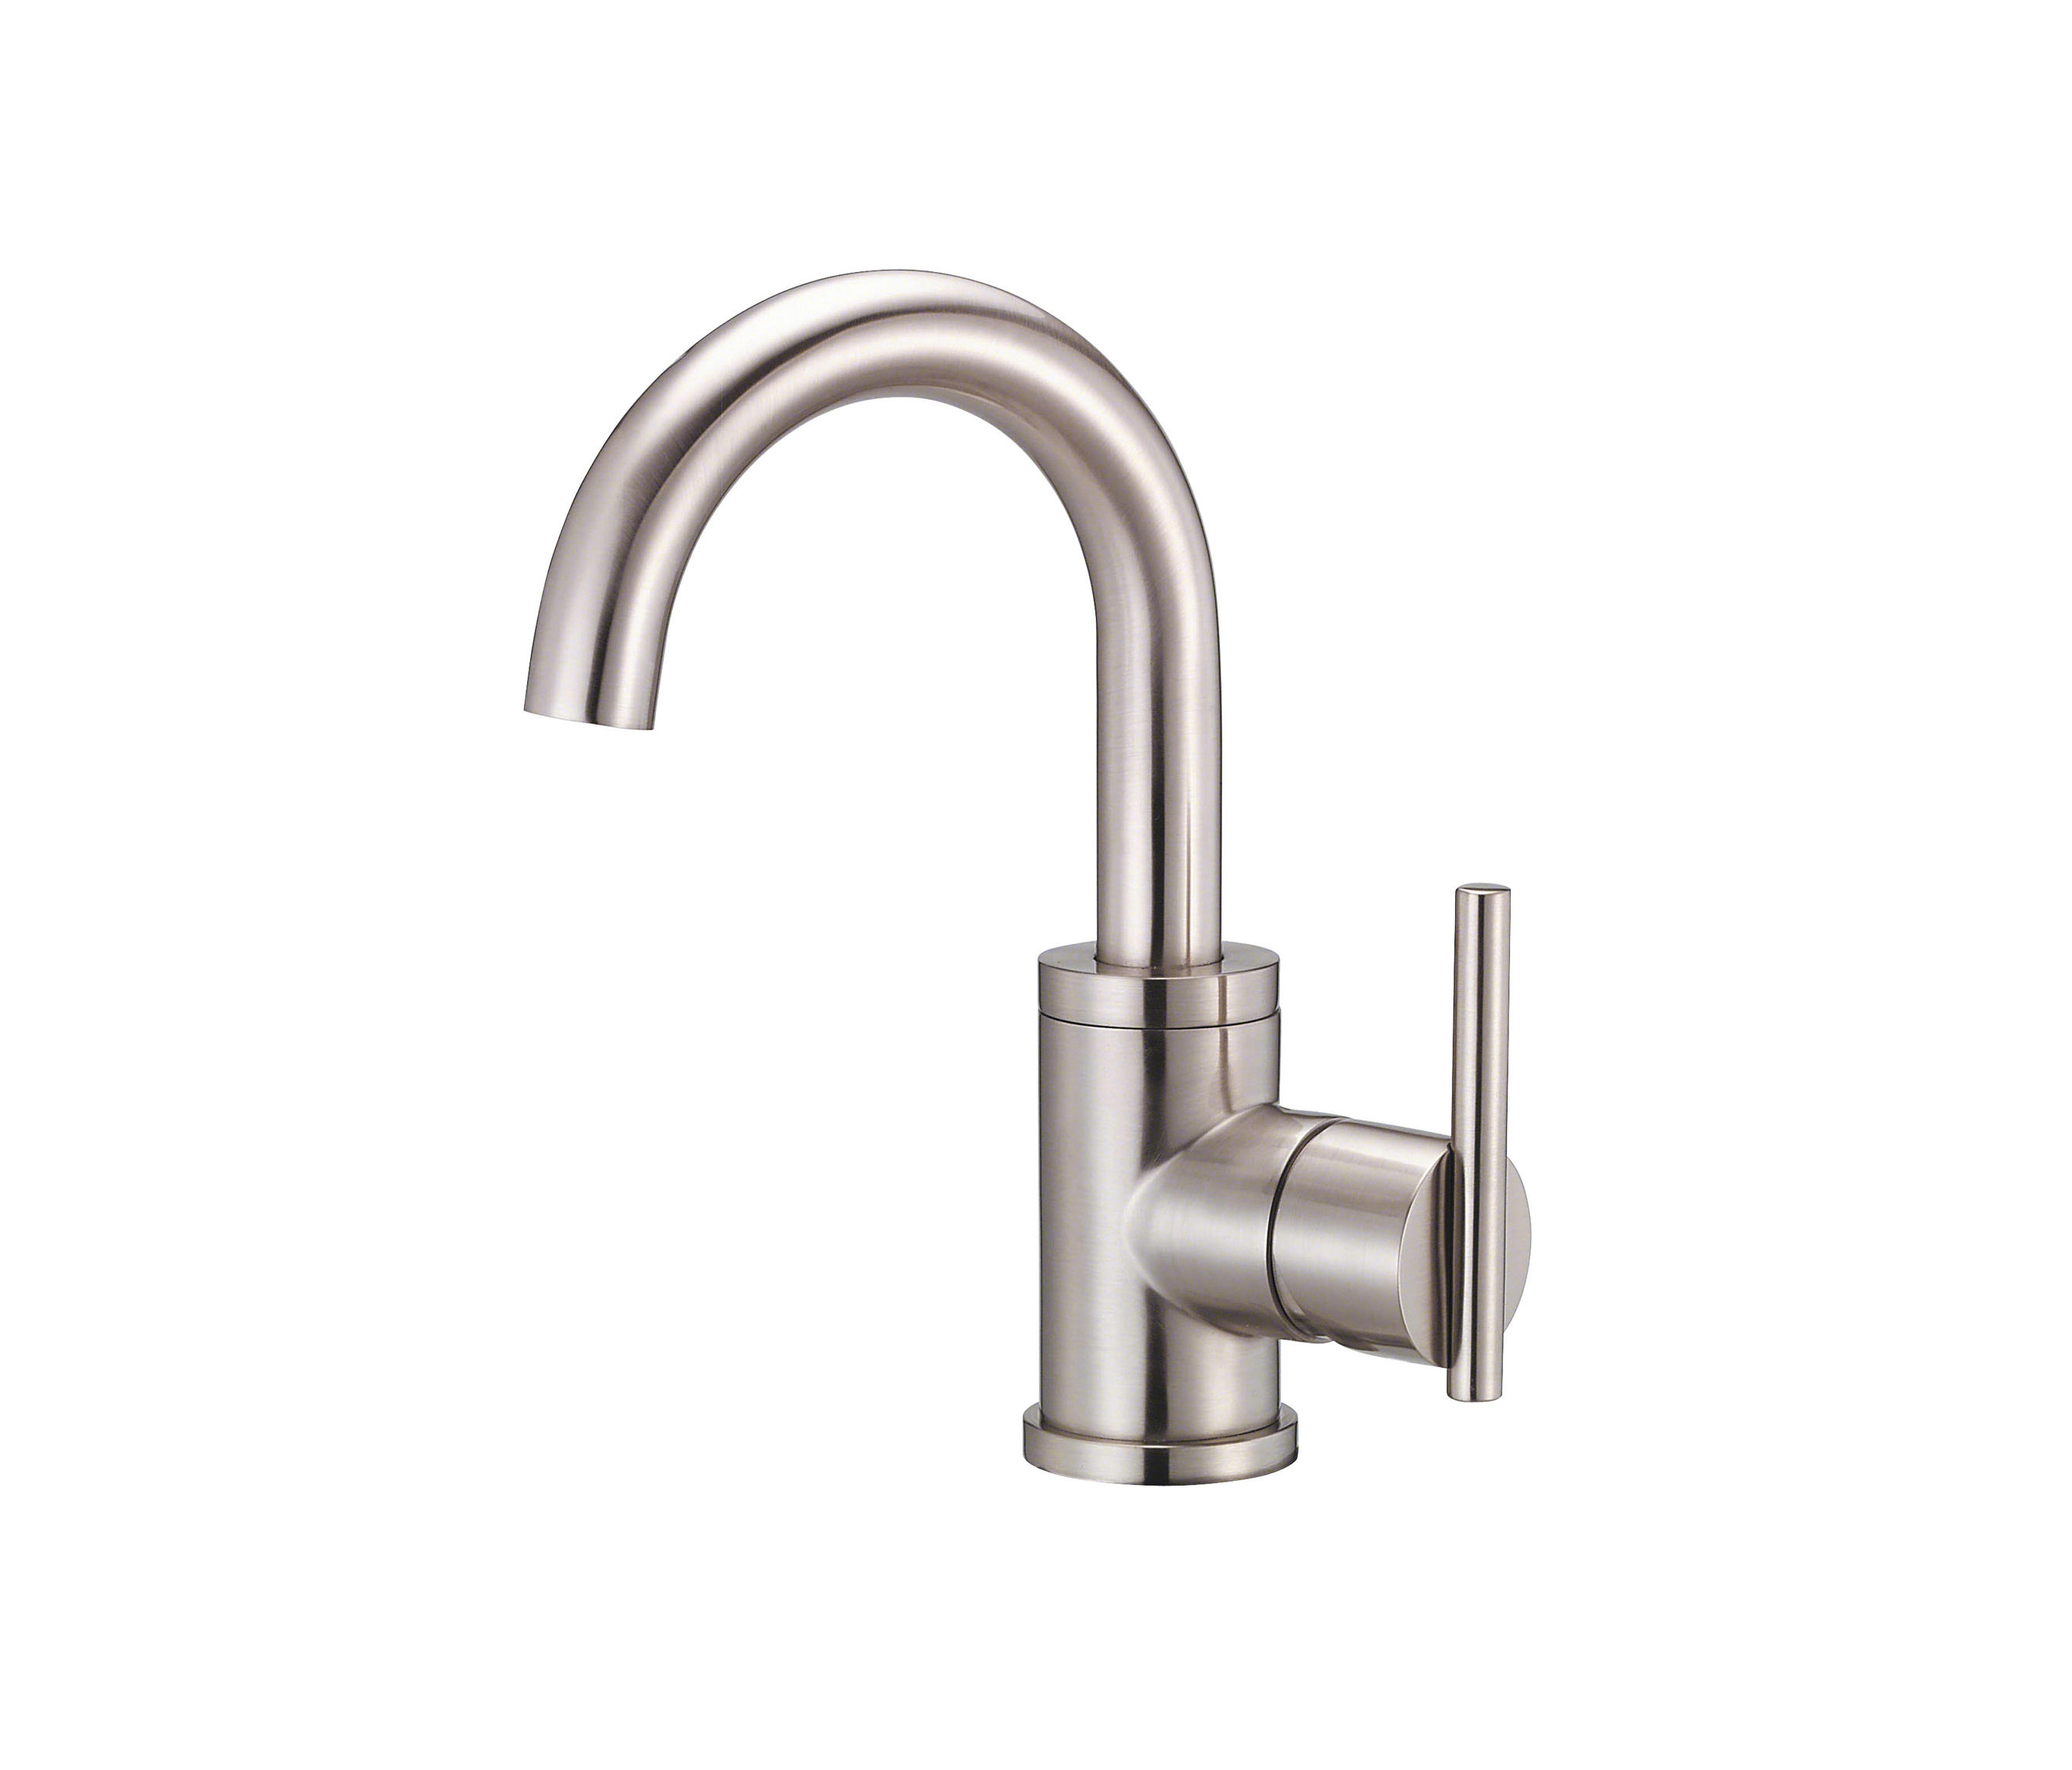 PARMA® | SINGLE HANDLE LAVATORY FAUCET, 1.2GPM - Wash-basin taps ...